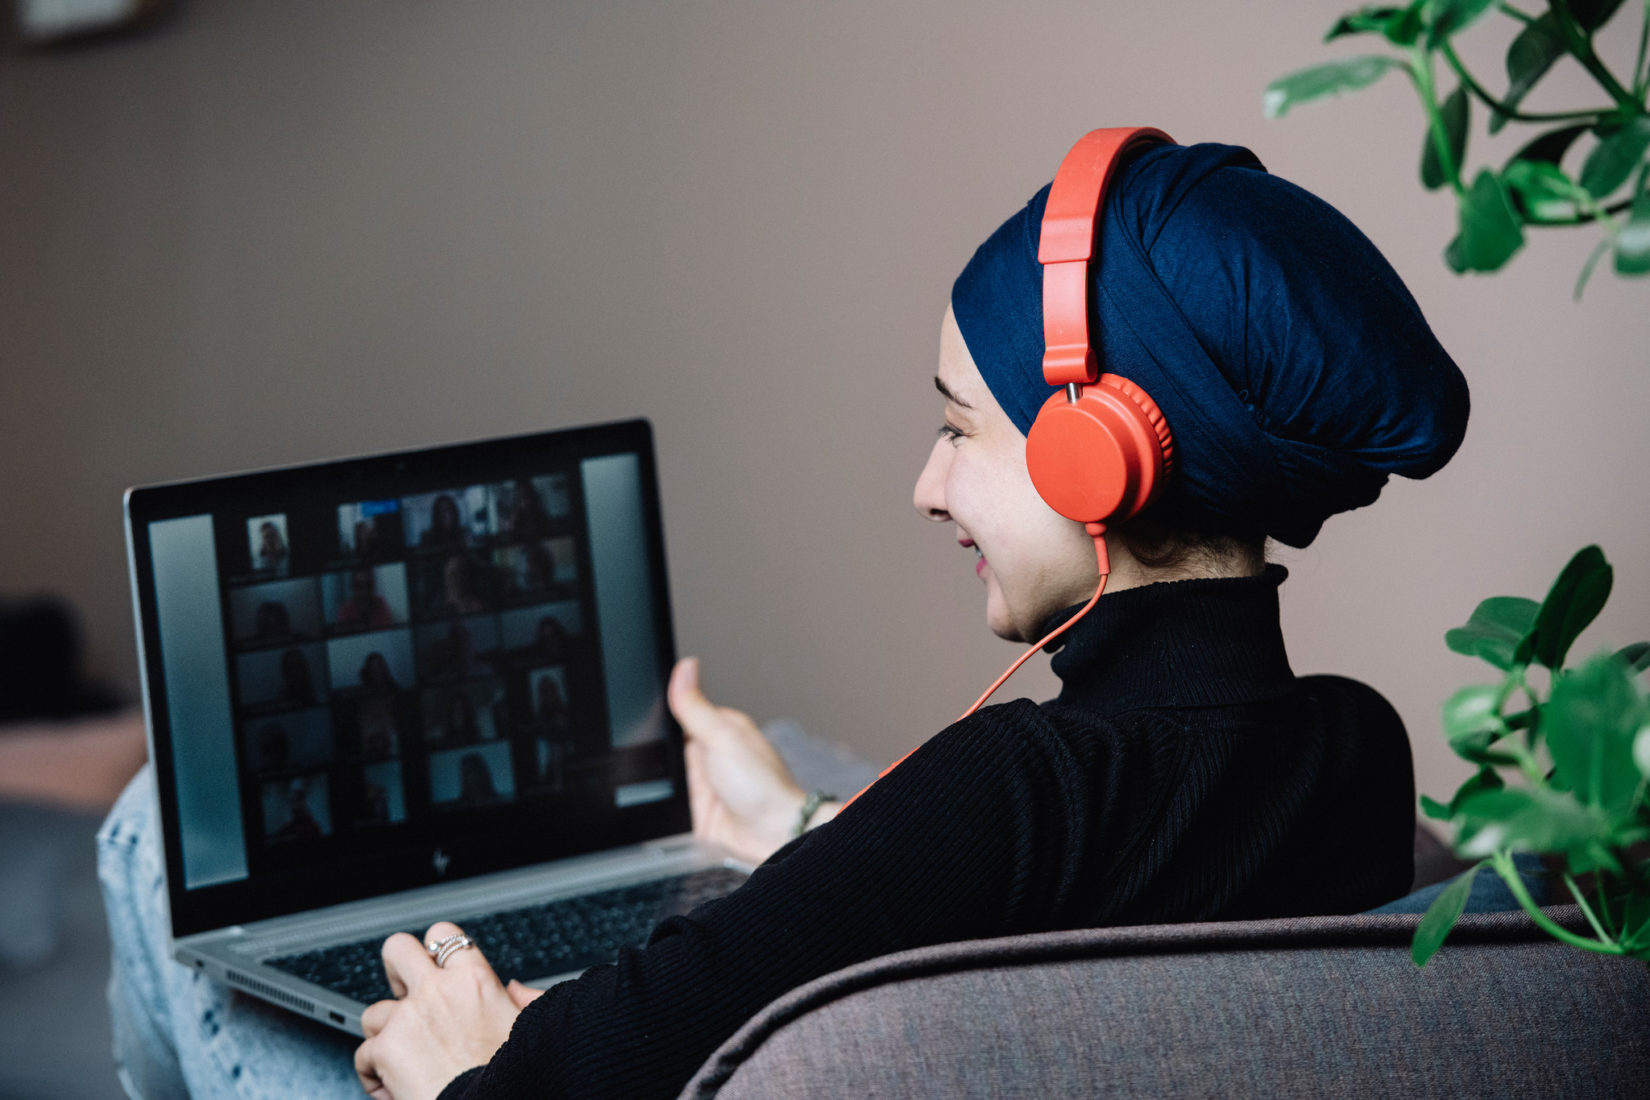 A woman connected to a online meeting.